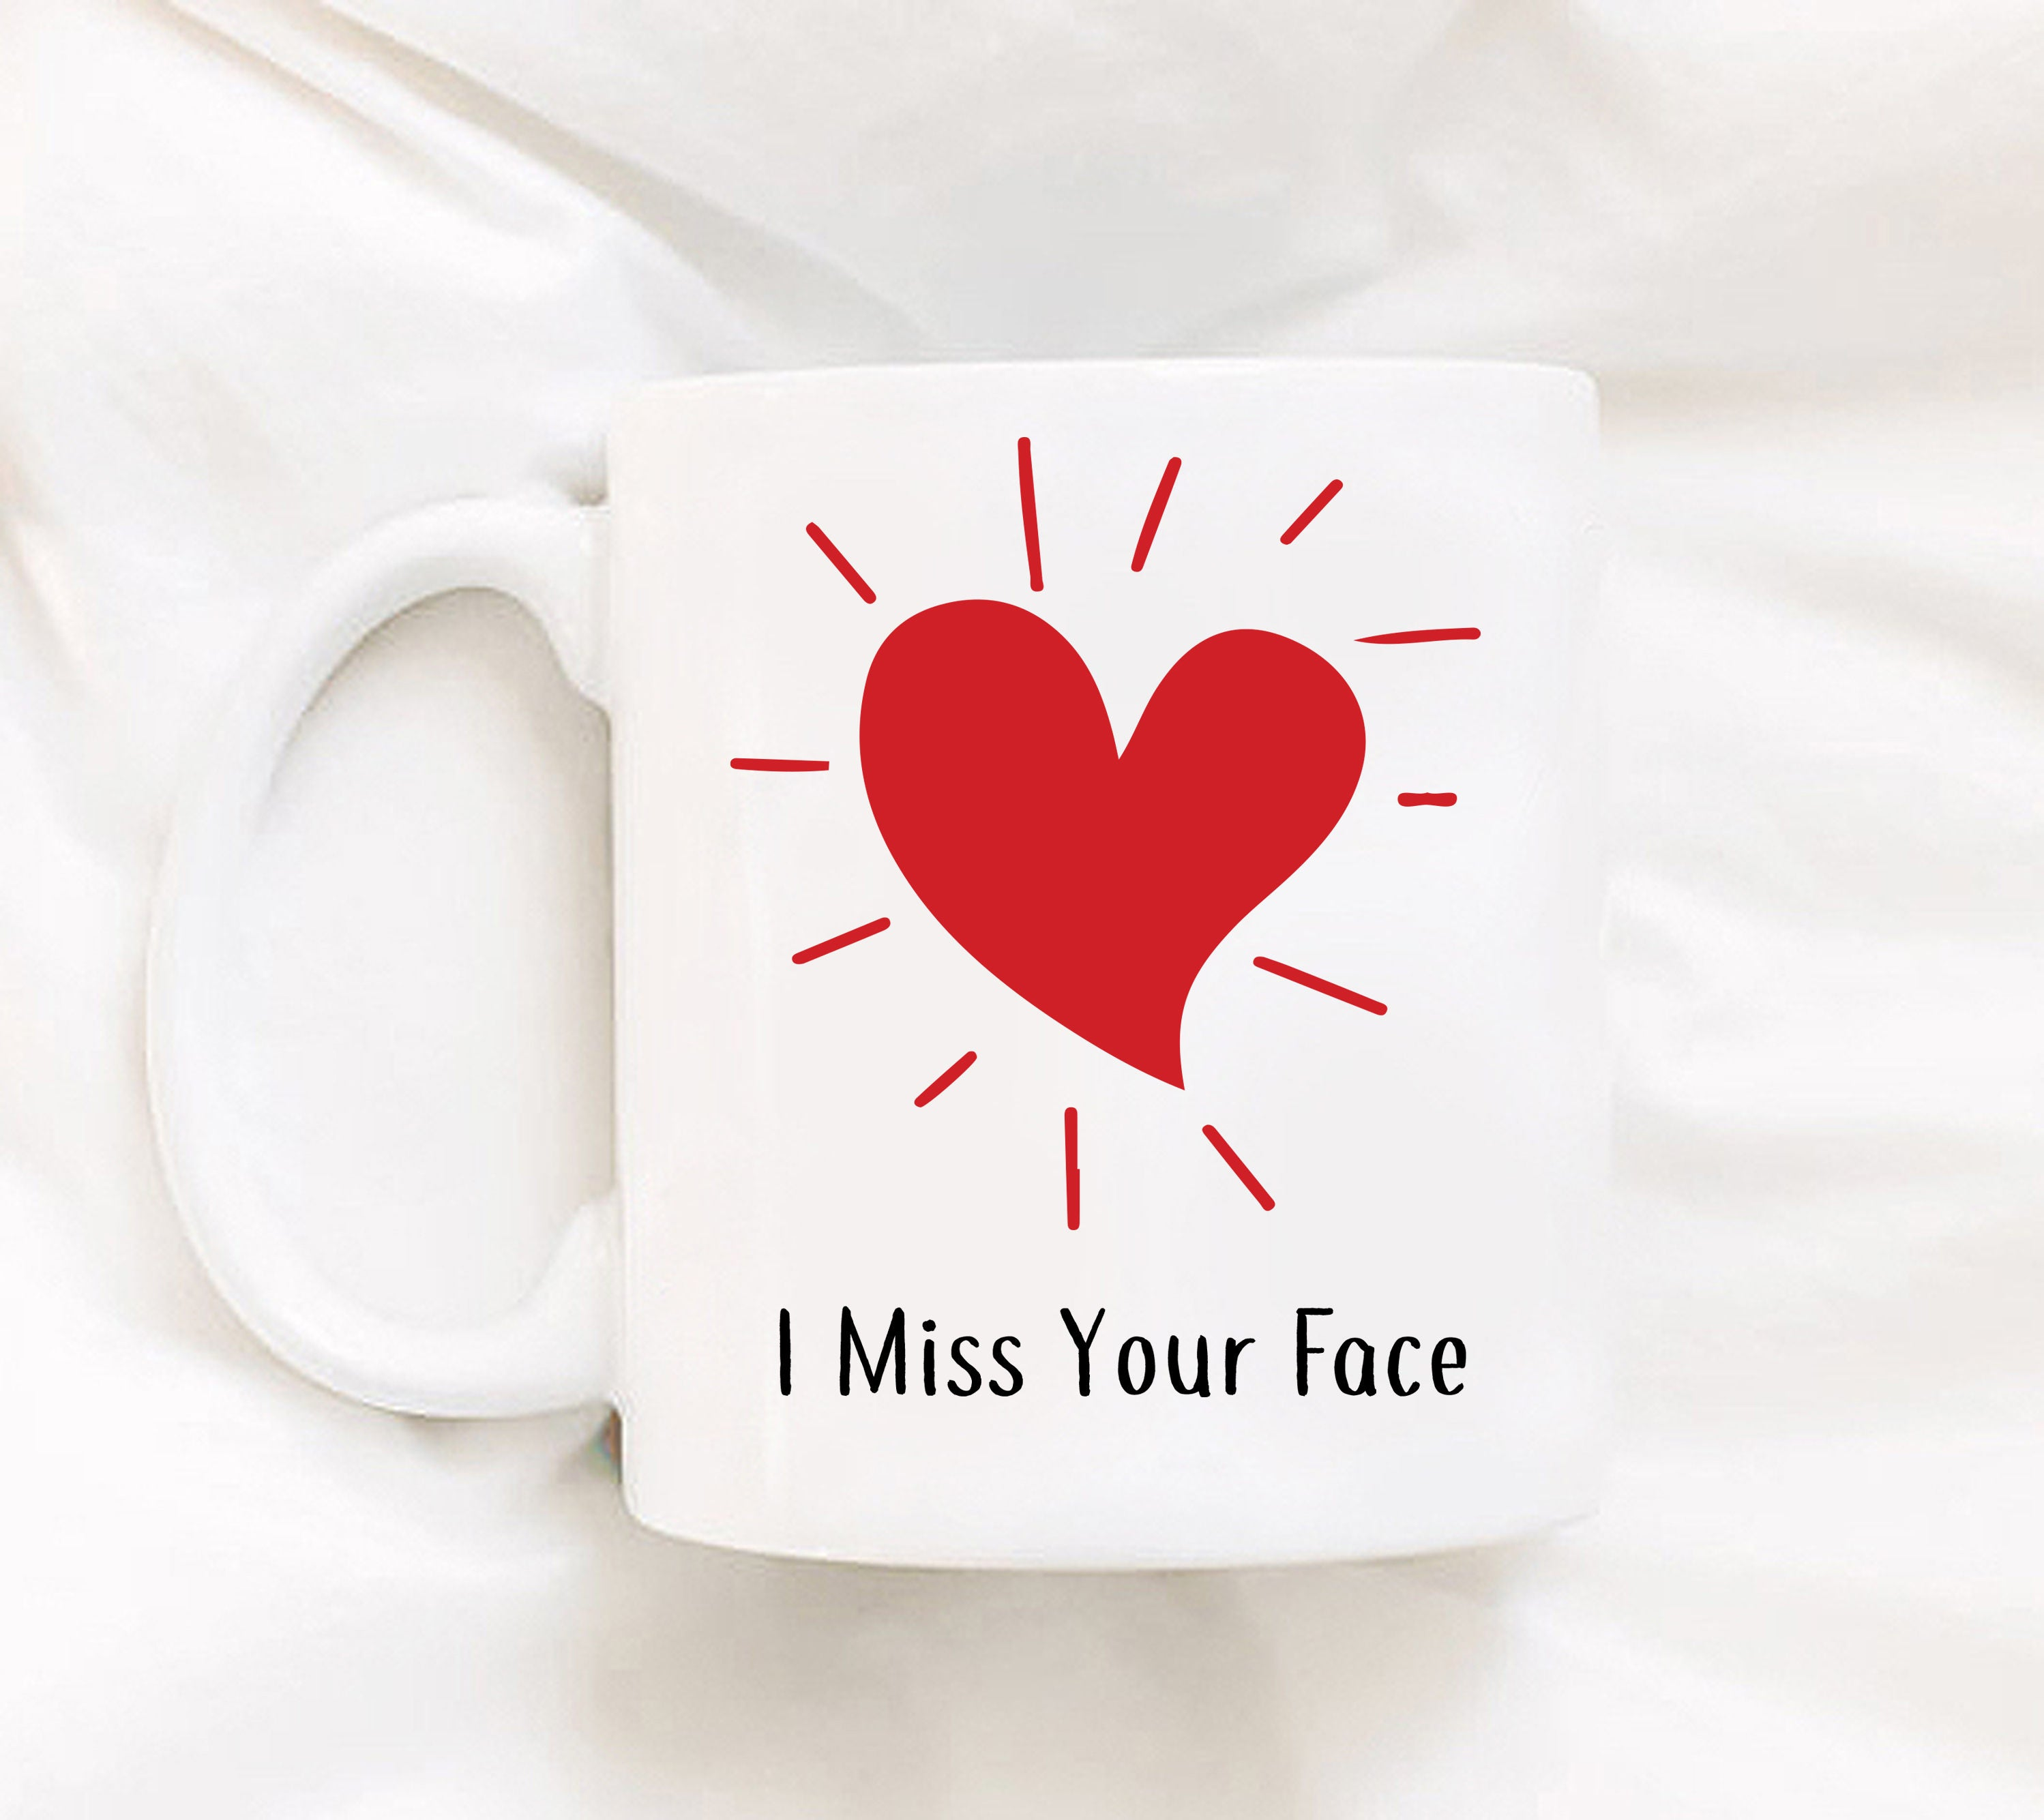 I Miss Your Face Cup Of Heart Heart Mug Cute Miss You Mug I Miss You A Lot Mug Mug For Missing Someone Thinking Of You Mug For Coffee or Tea